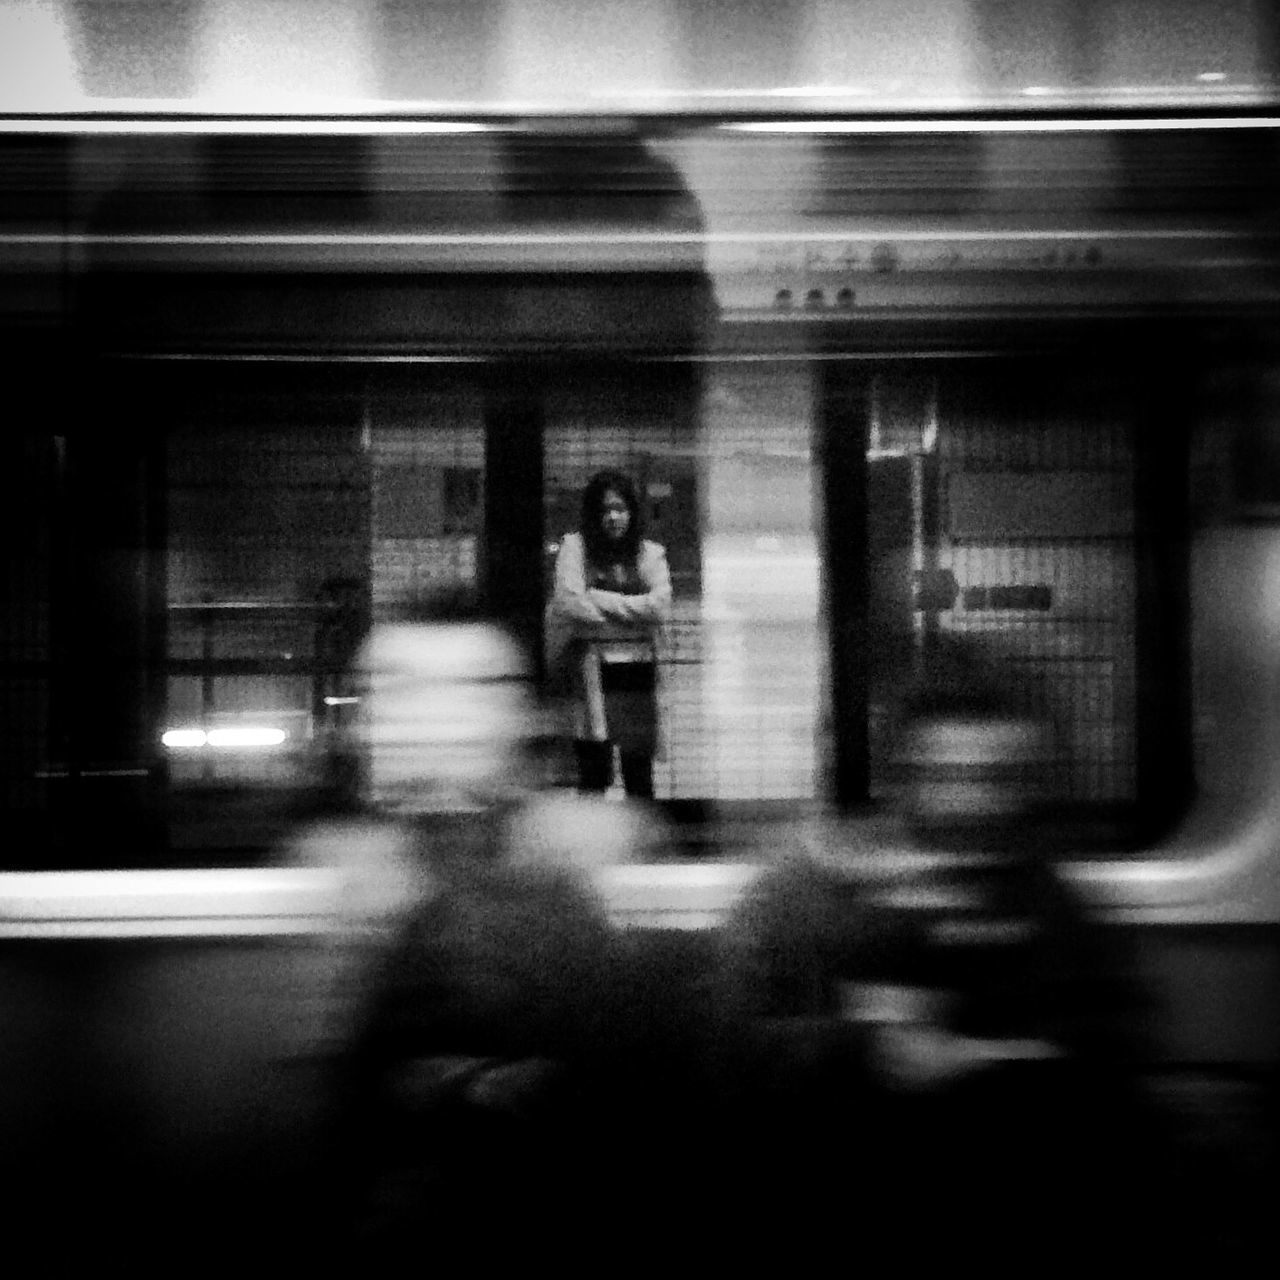 BLURRED MOTION OF WOMAN IN CAR